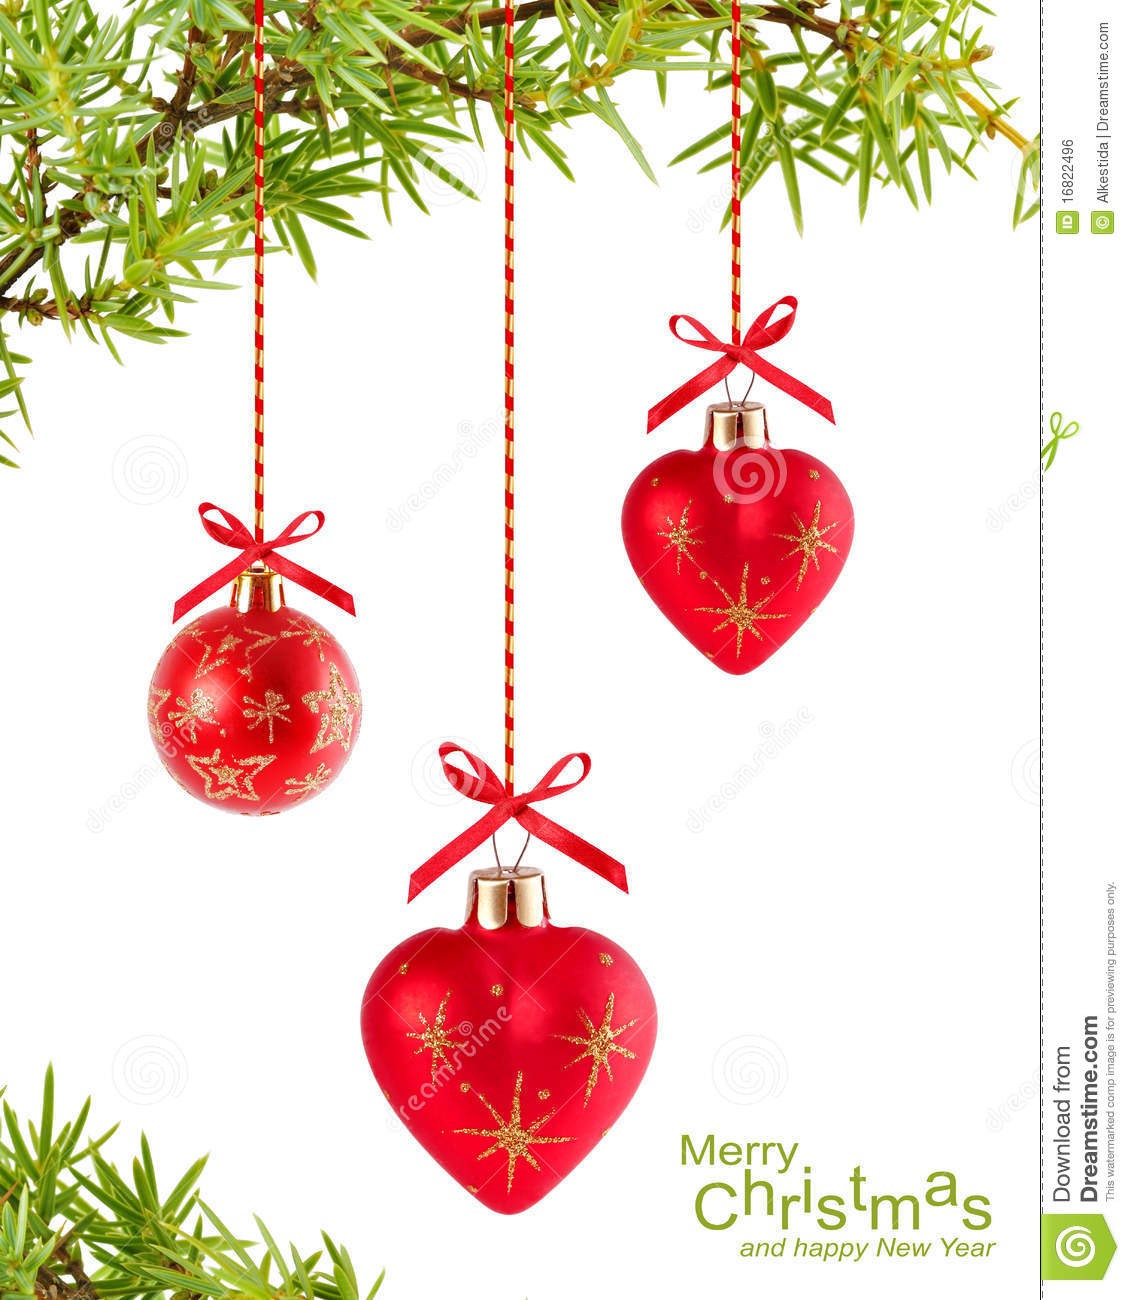 Photo christmas ball heart shaped red decoration new year